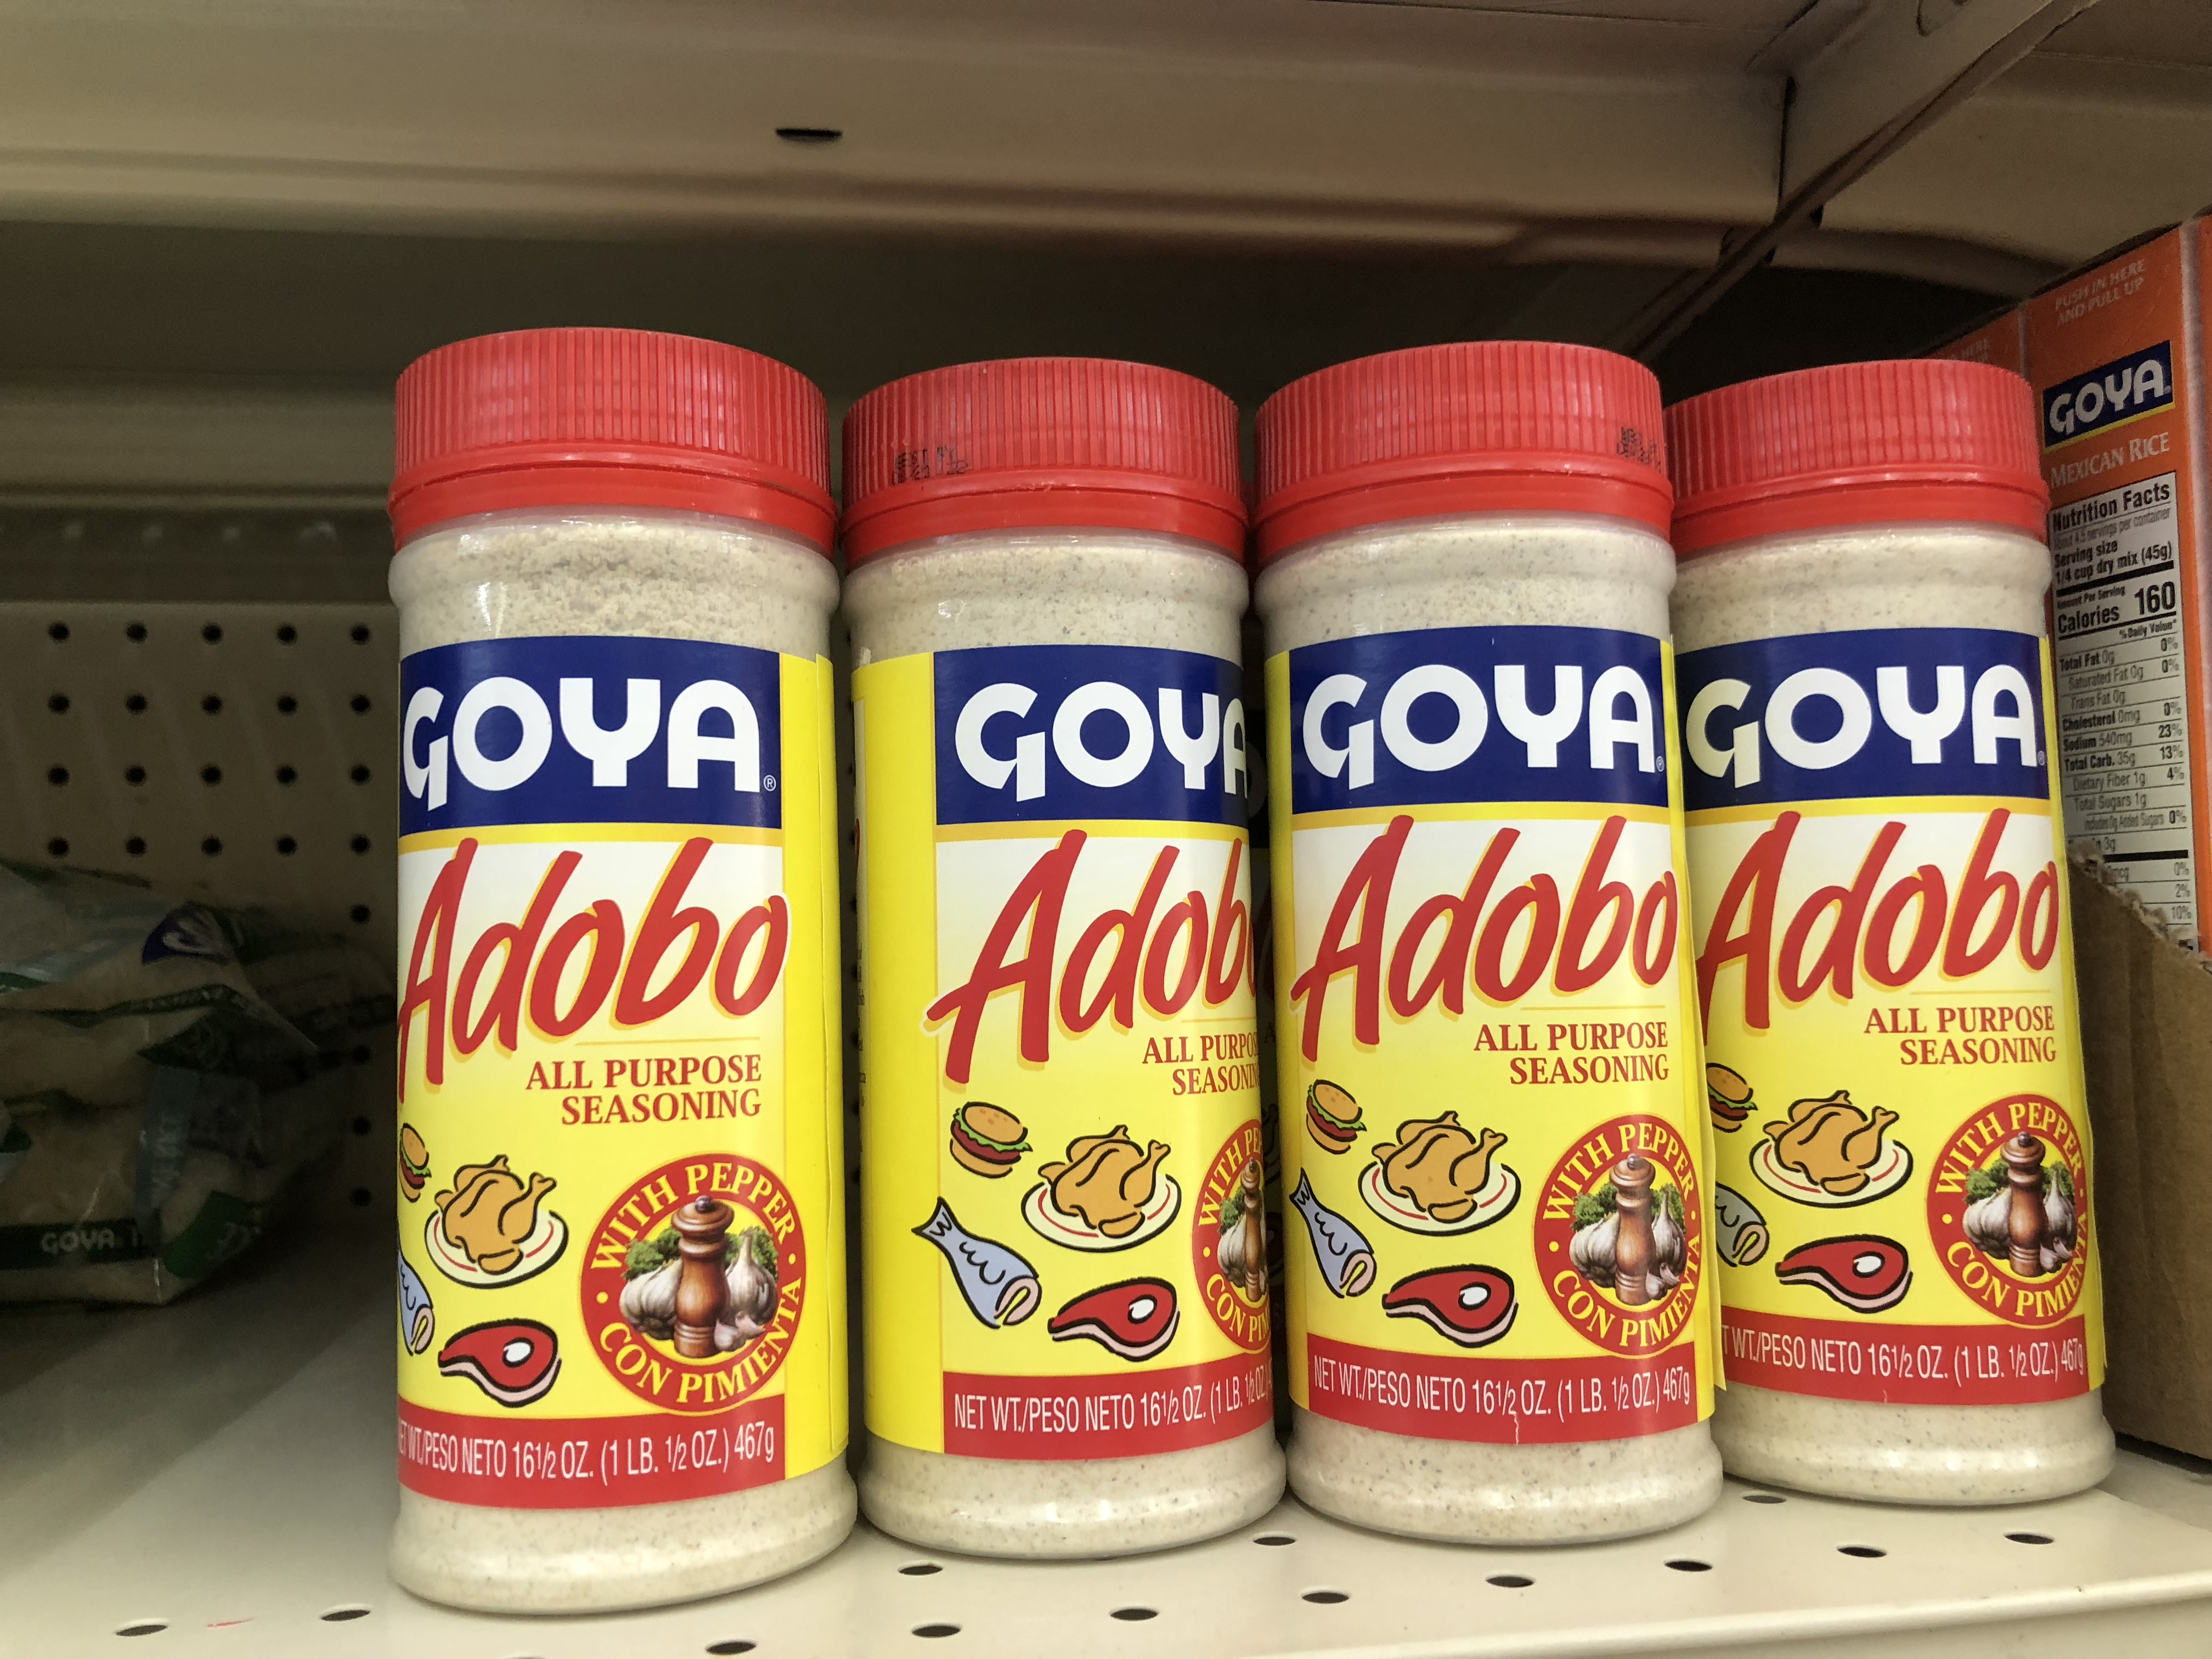 Goya Adobo All Purpose Seasoning